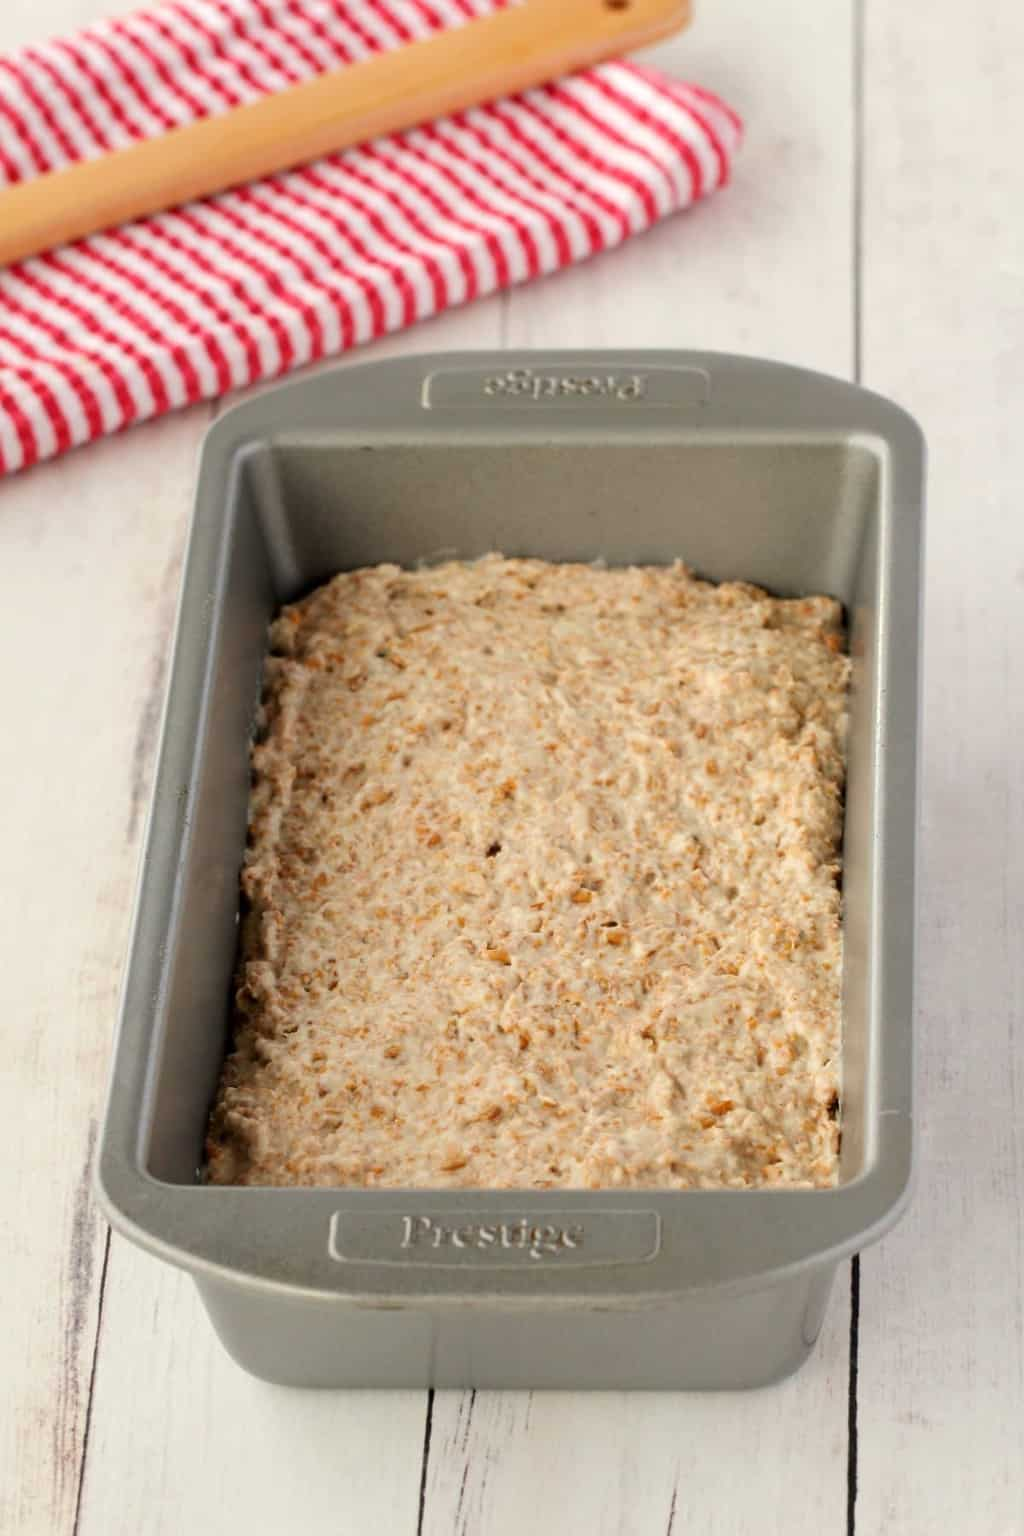 Wholewheat Bread dough in a loaf pan.